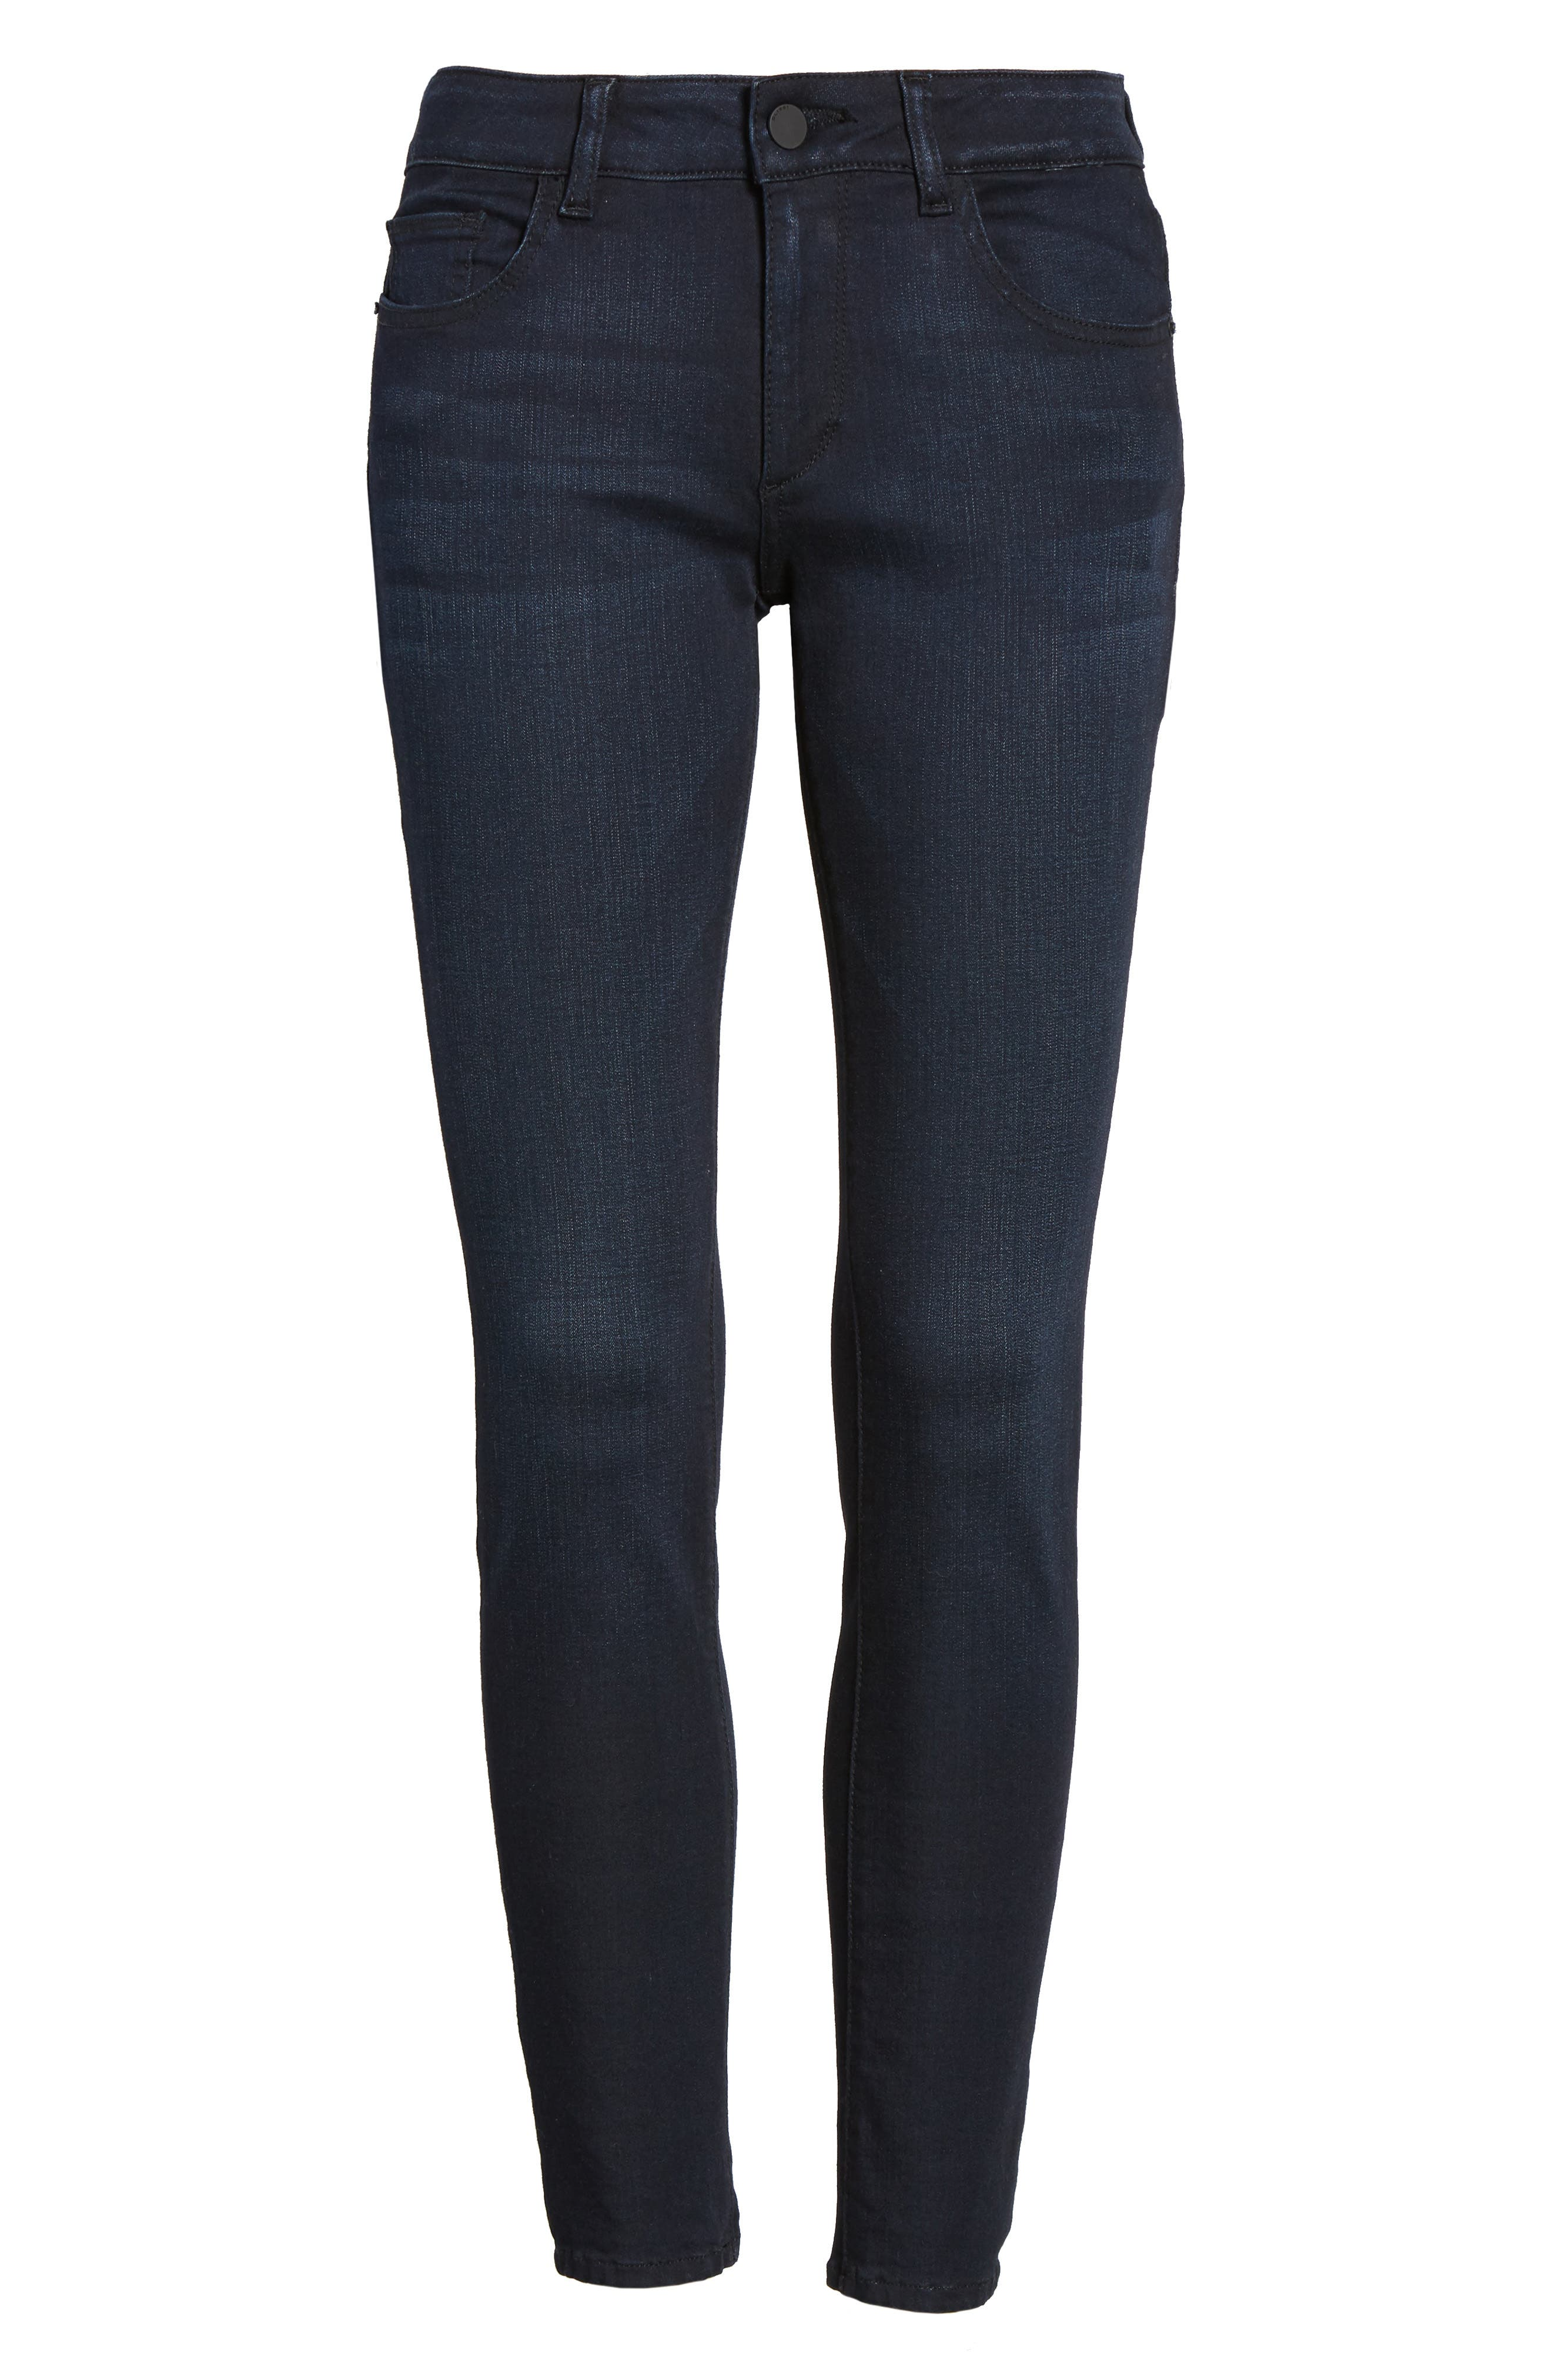 Margaux Ankle Skinny Jeans,                             Alternate thumbnail 7, color,                             405